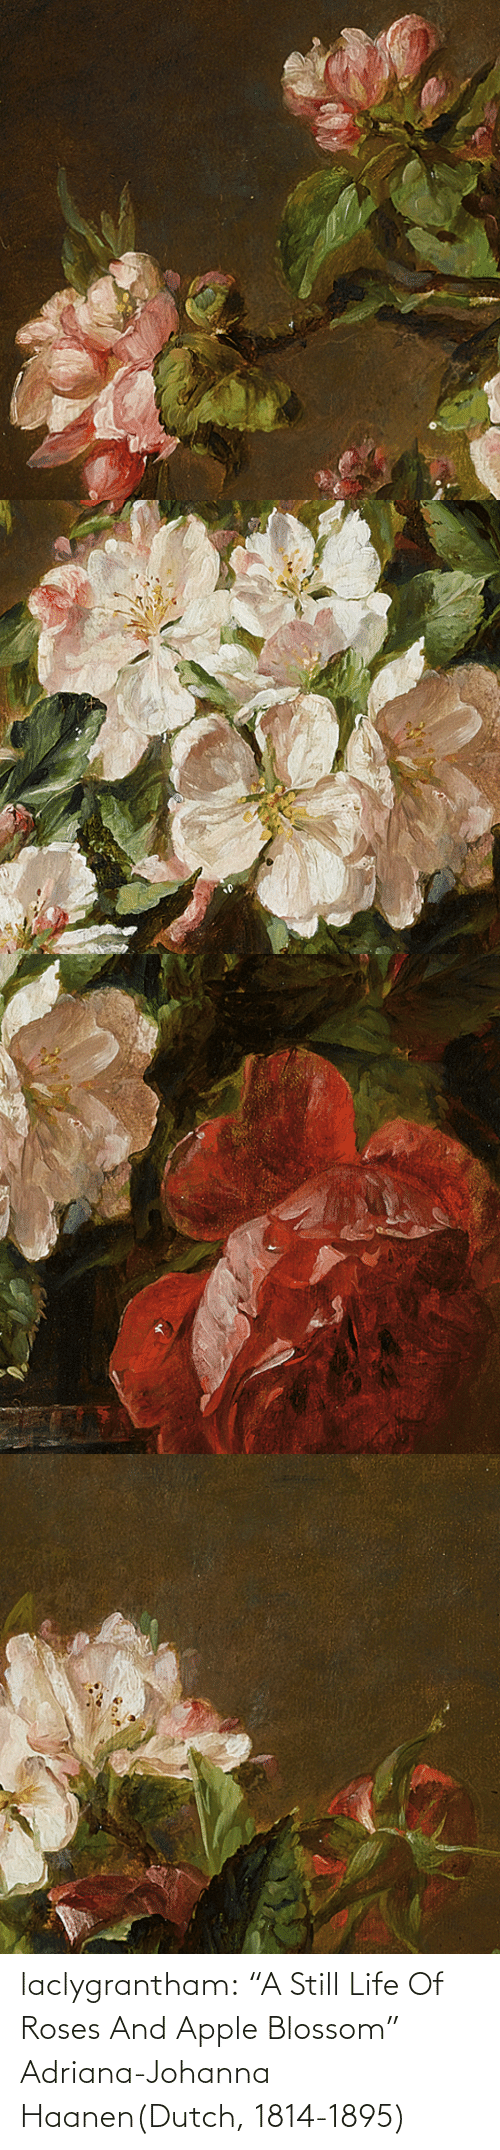 "Apple: laclygrantham:  ""A Still Life Of Roses And Apple Blossom"" Adriana-Johanna Haanen(Dutch, 1814-1895)"